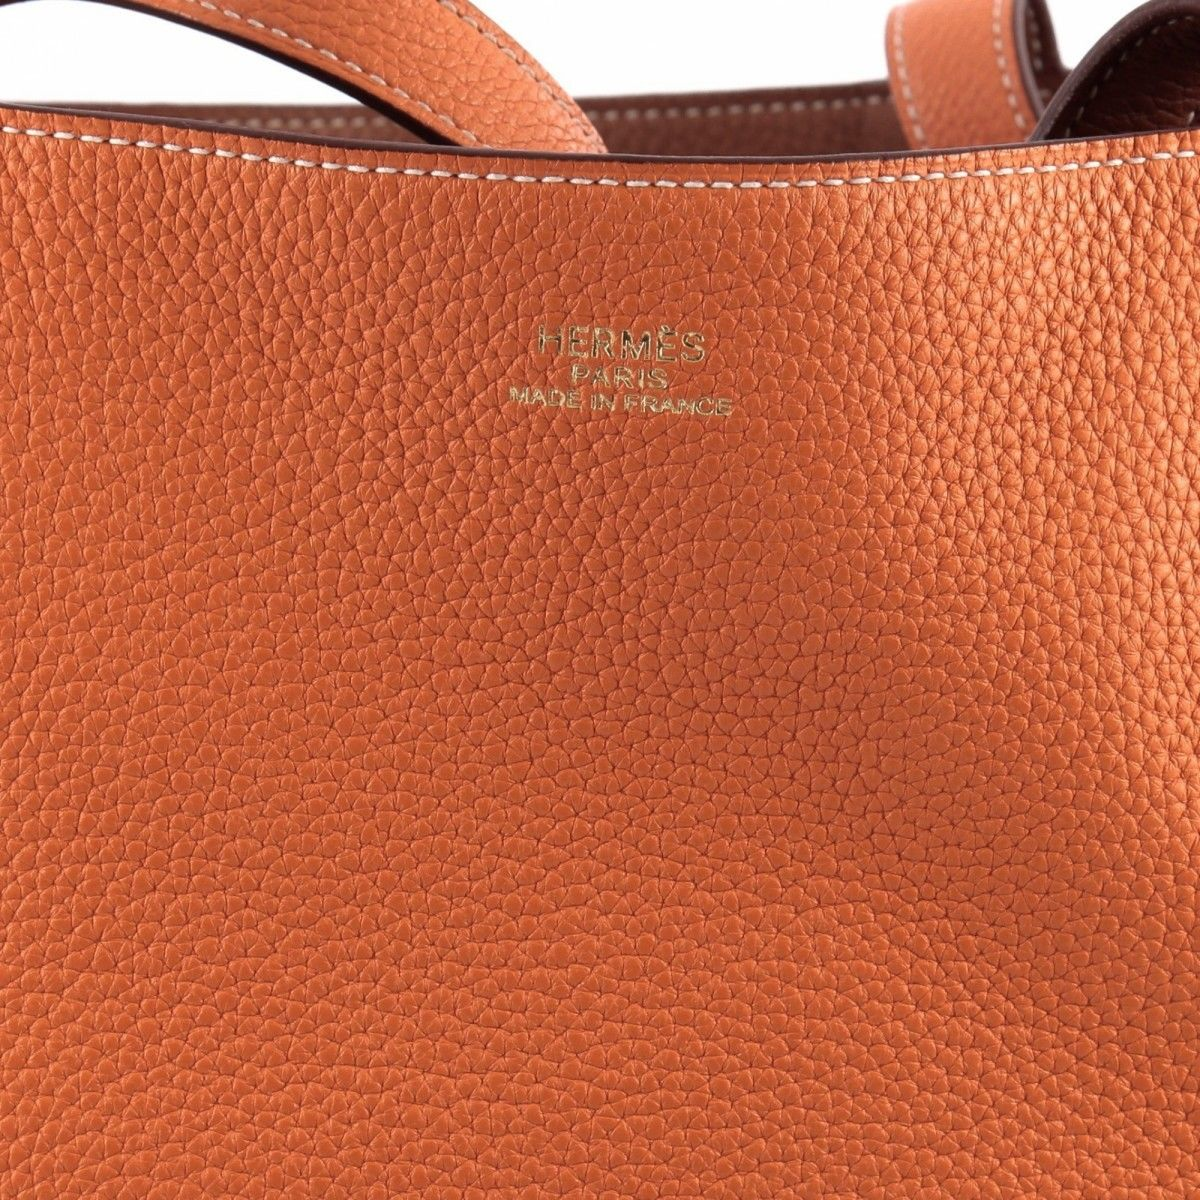 63a06afa3a8f Hermès Double Sens Tote Clemence 36 Leather - LXRandCo - Pre-Owned ...